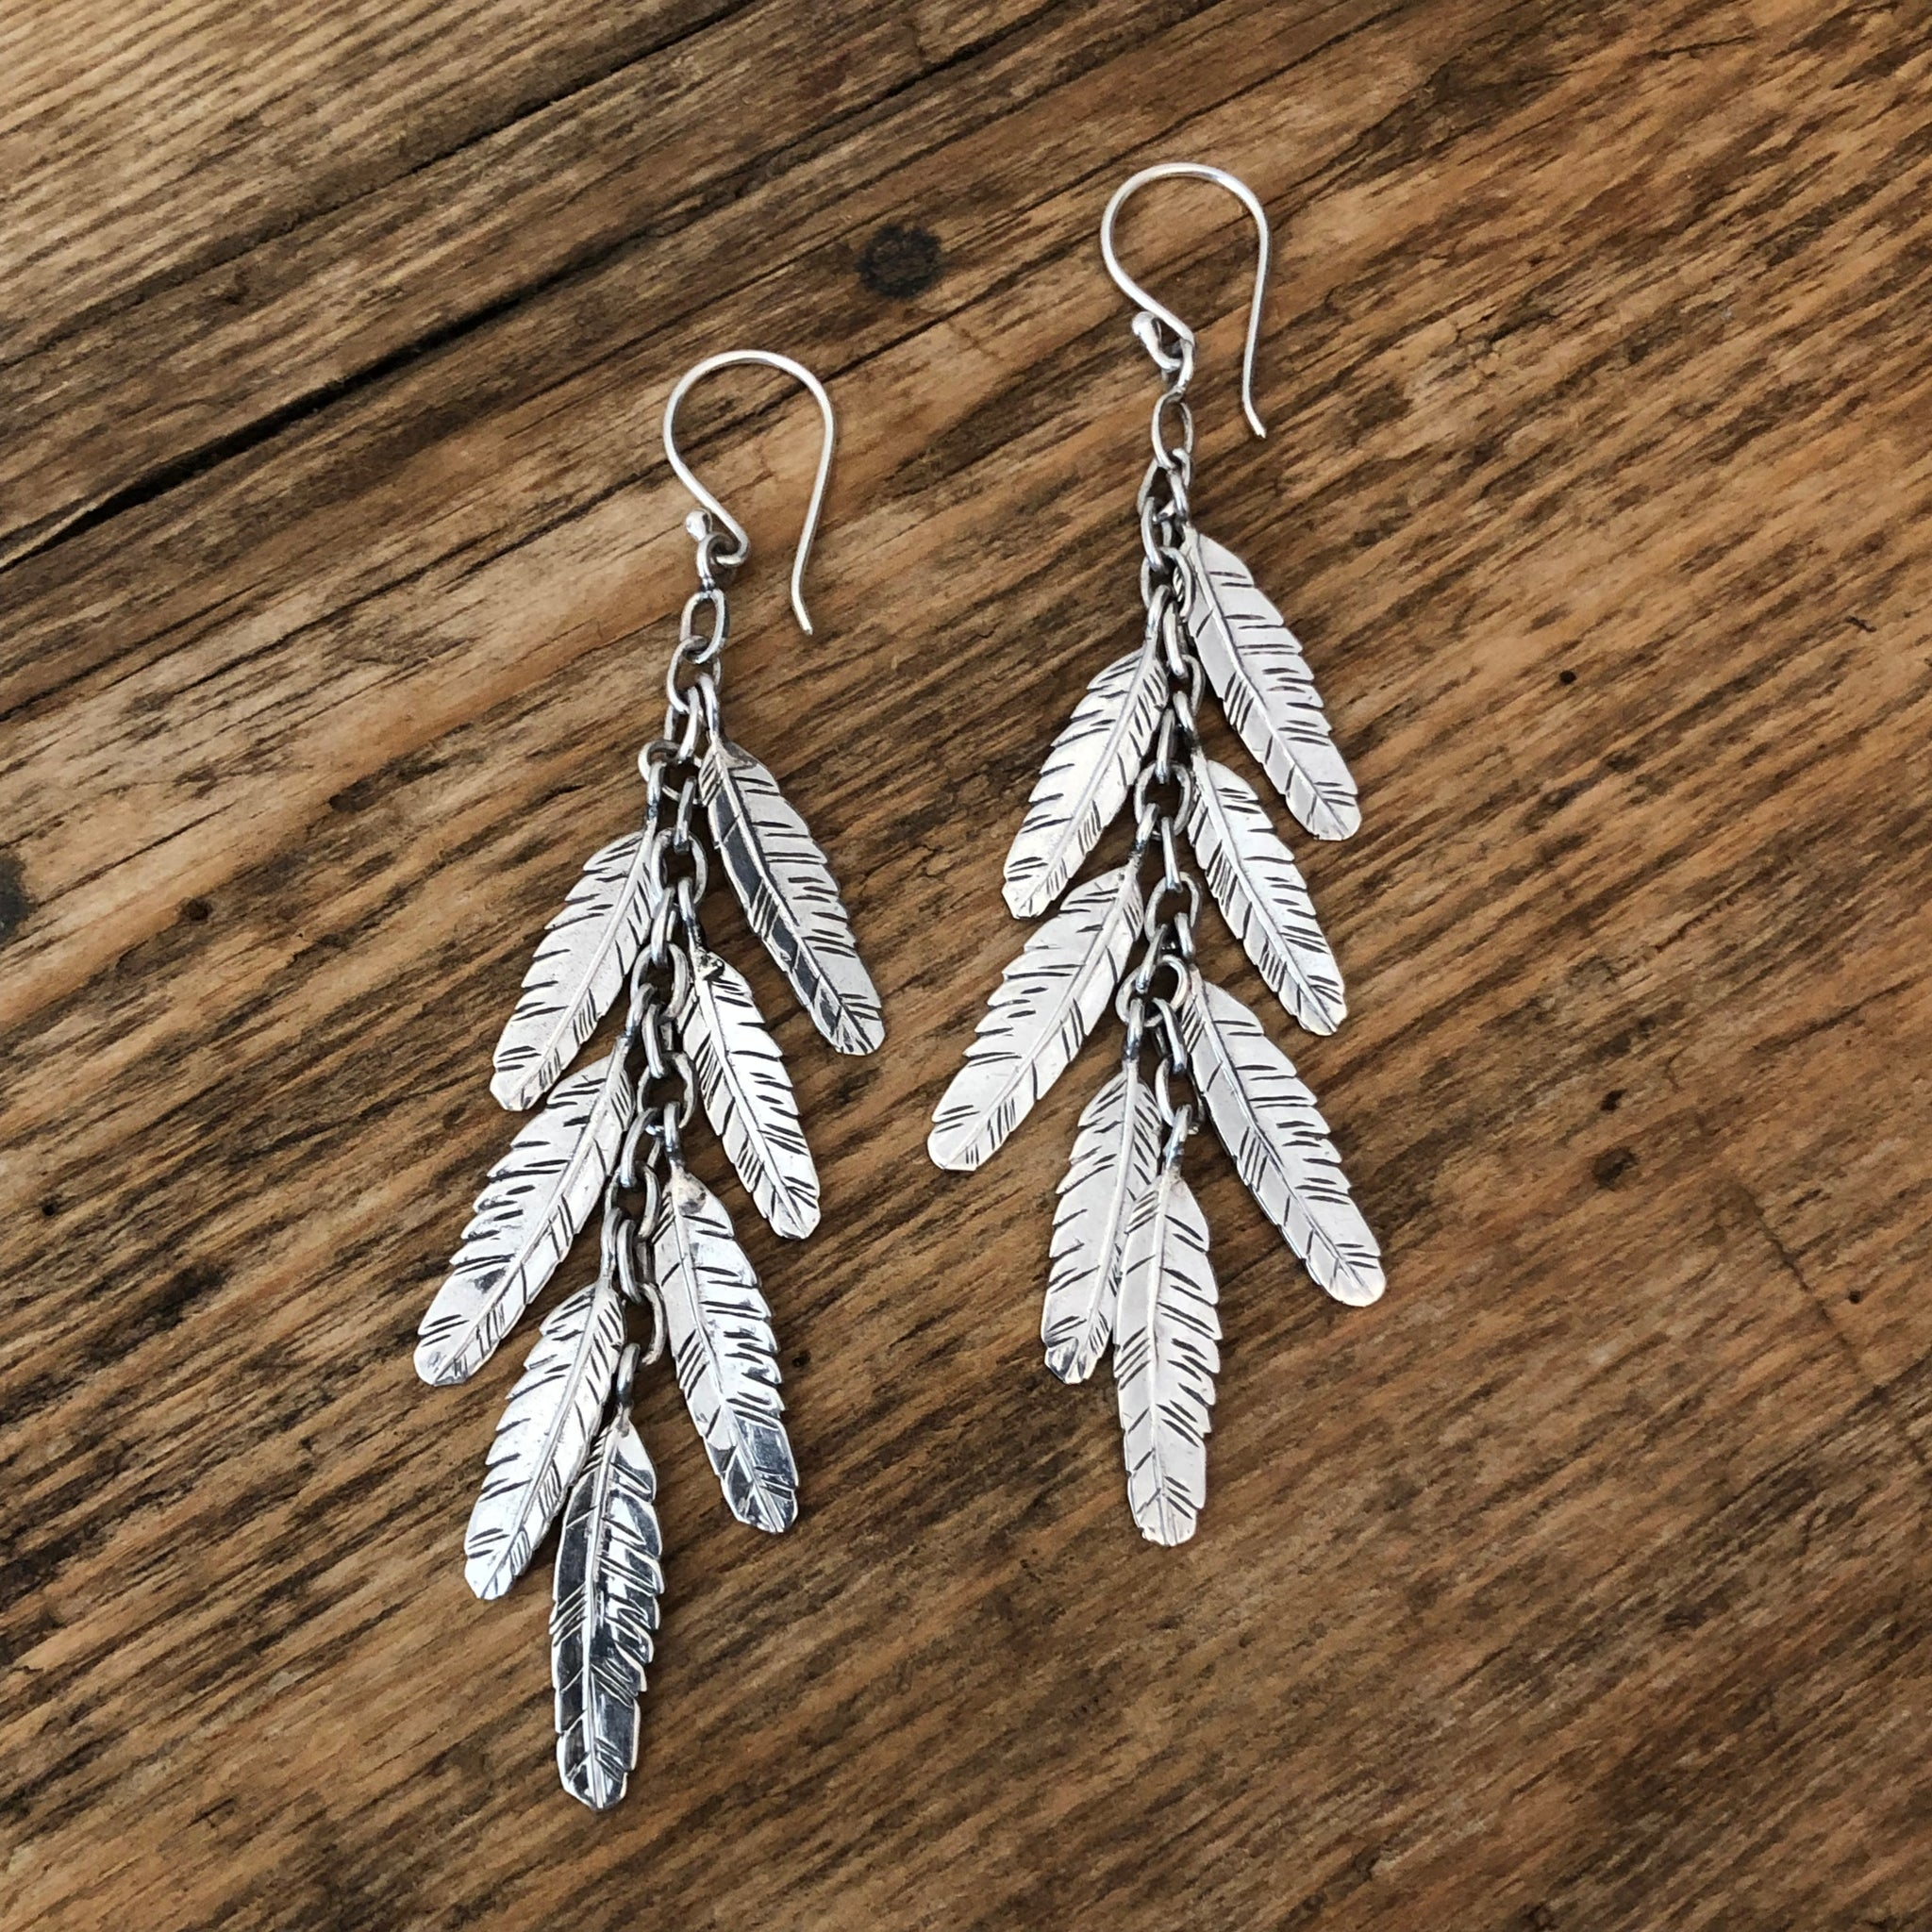 'Seven Feathers for Seven Days' Earrings